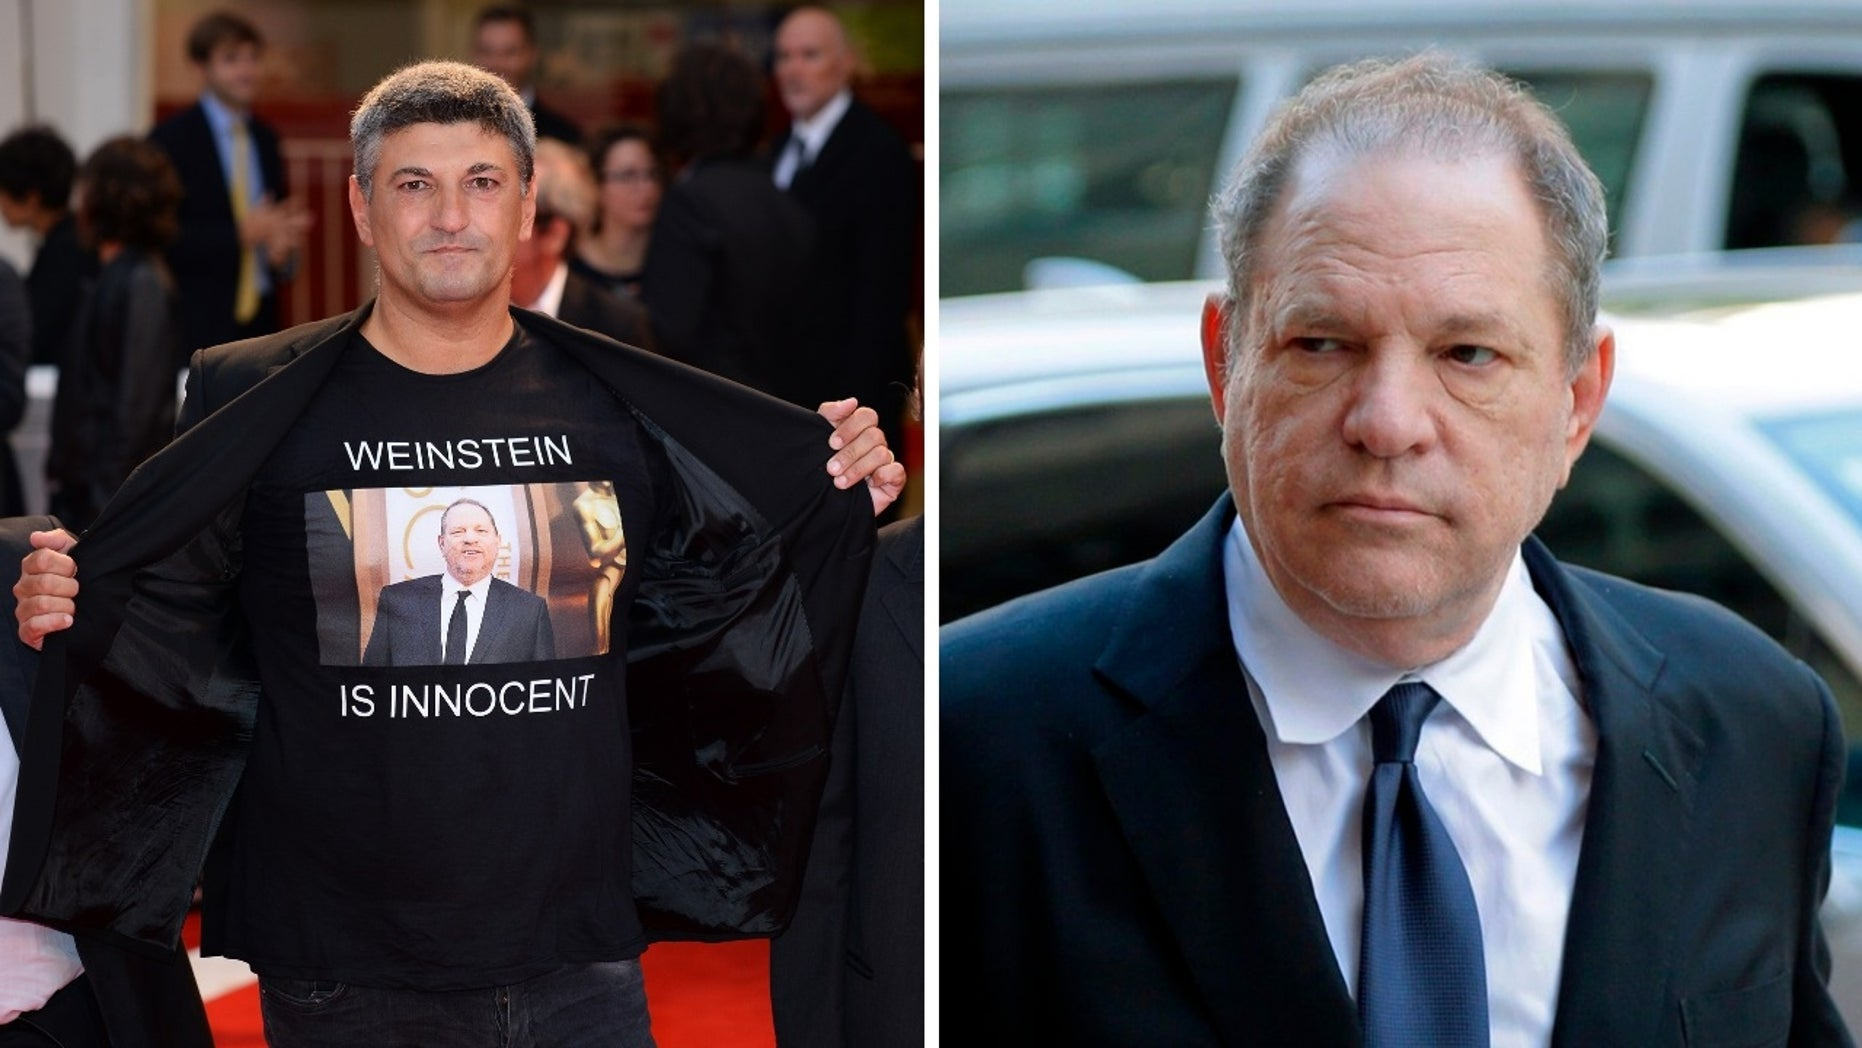 """Italian director Luciano Silighini Garagnani, left, wore a """"Weinstein is innocent"""" shirt at a film premiere Saturday. Harvey Weinstein, right, is accused of several sex assaults."""